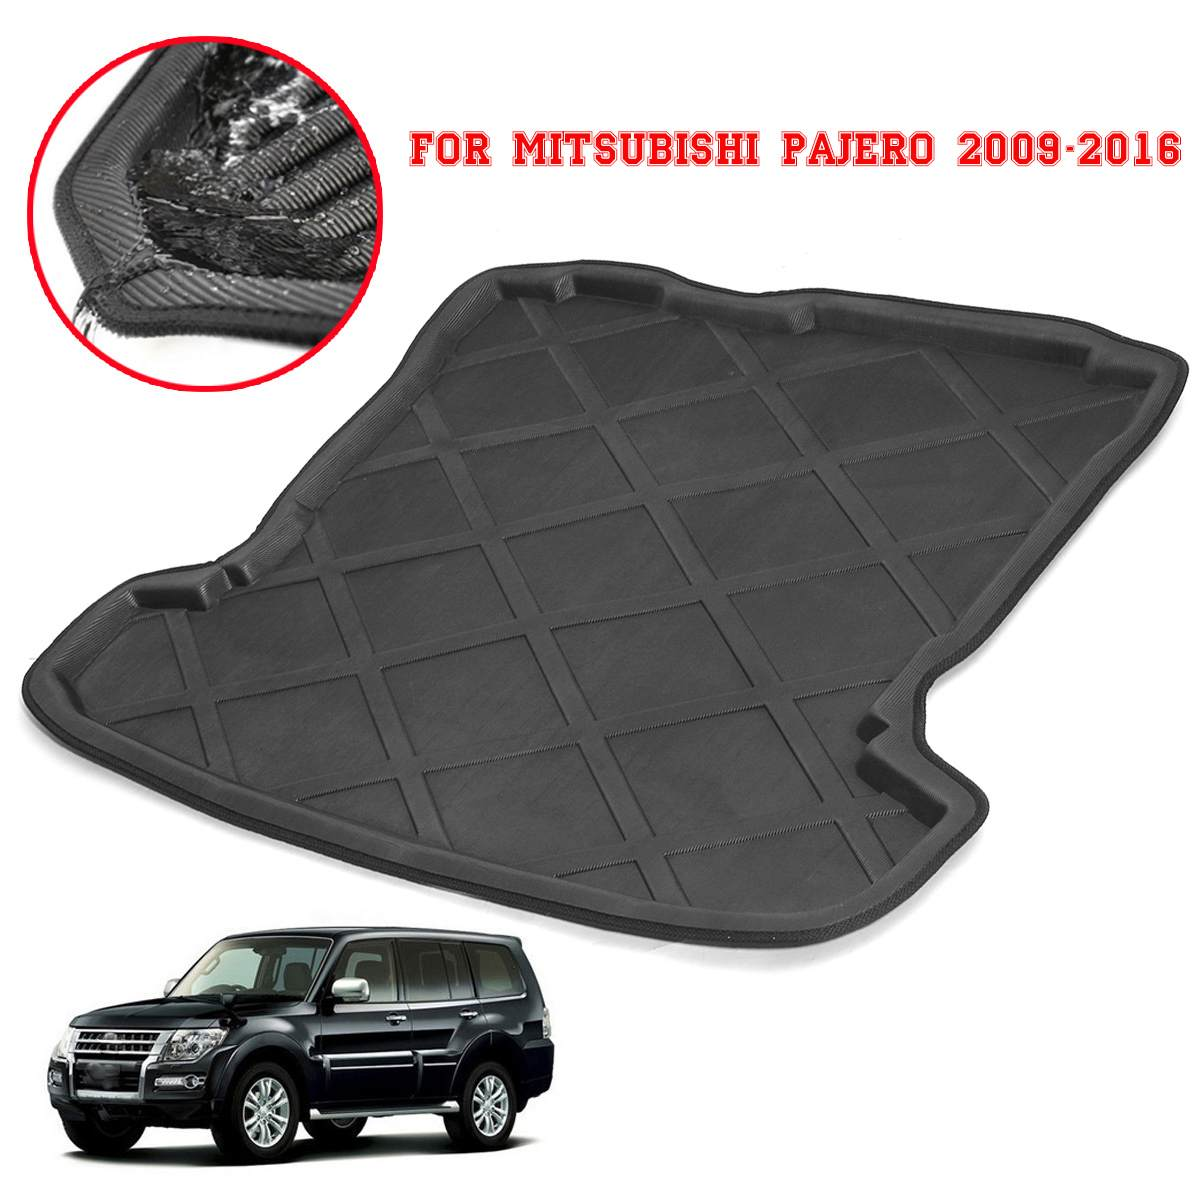 For Mitsubishi Pajero 2009-2016 Car Rear Boot Liner Trunk Cargo Mat Tray Floor Carpet Mud Pad Protector Interior AccessoriesFor Mitsubishi Pajero 2009-2016 Car Rear Boot Liner Trunk Cargo Mat Tray Floor Carpet Mud Pad Protector Interior Accessories